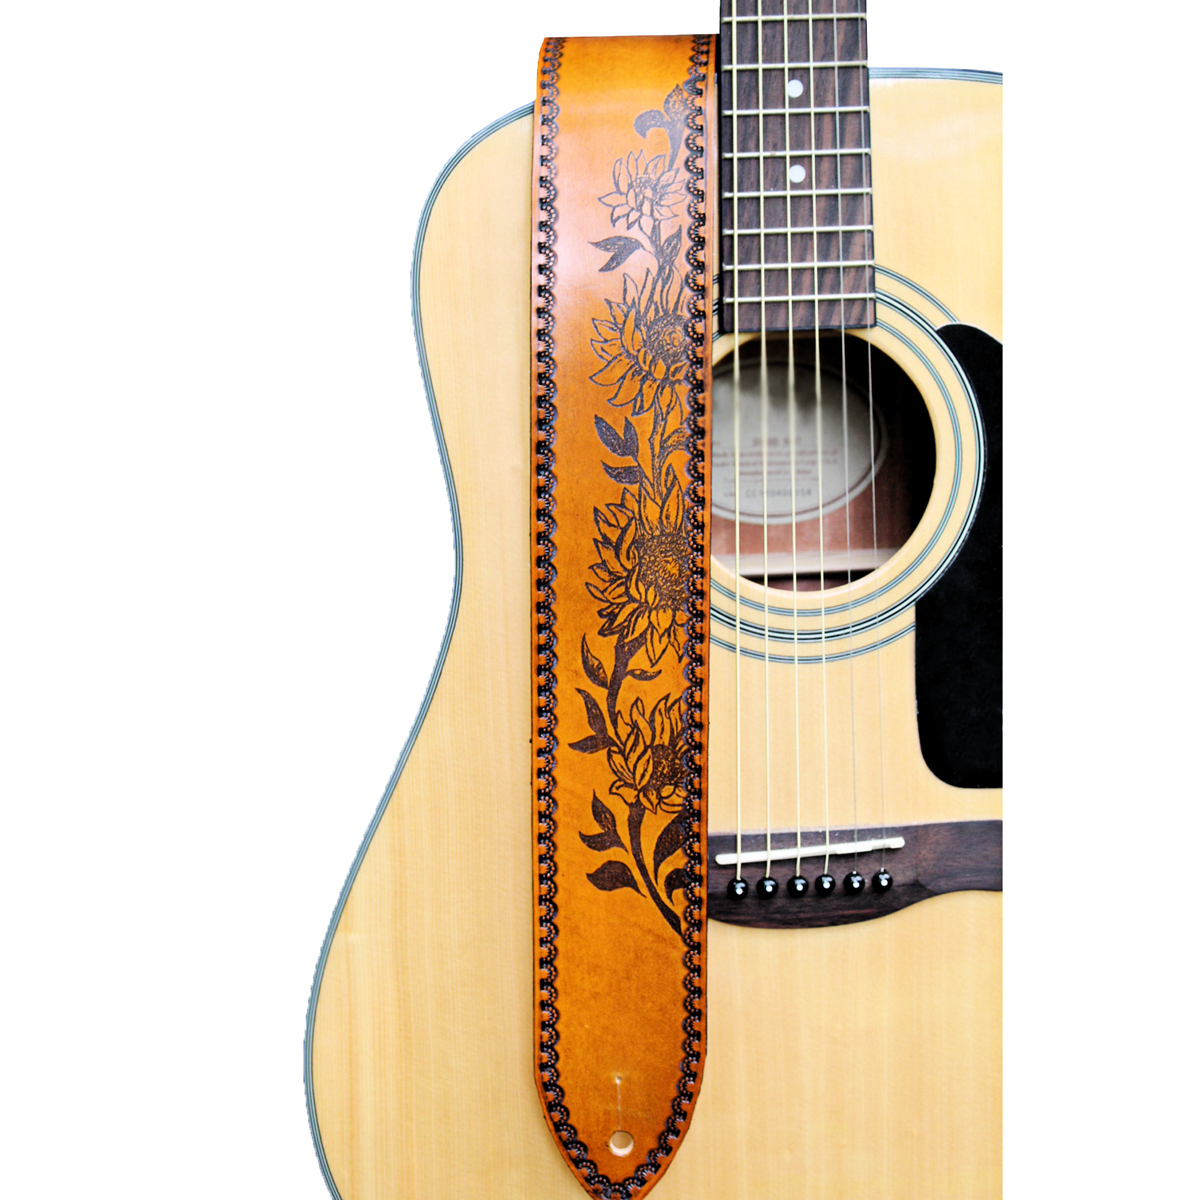 engraved-guitar-strap-leather-the-leather-smithy-WEB